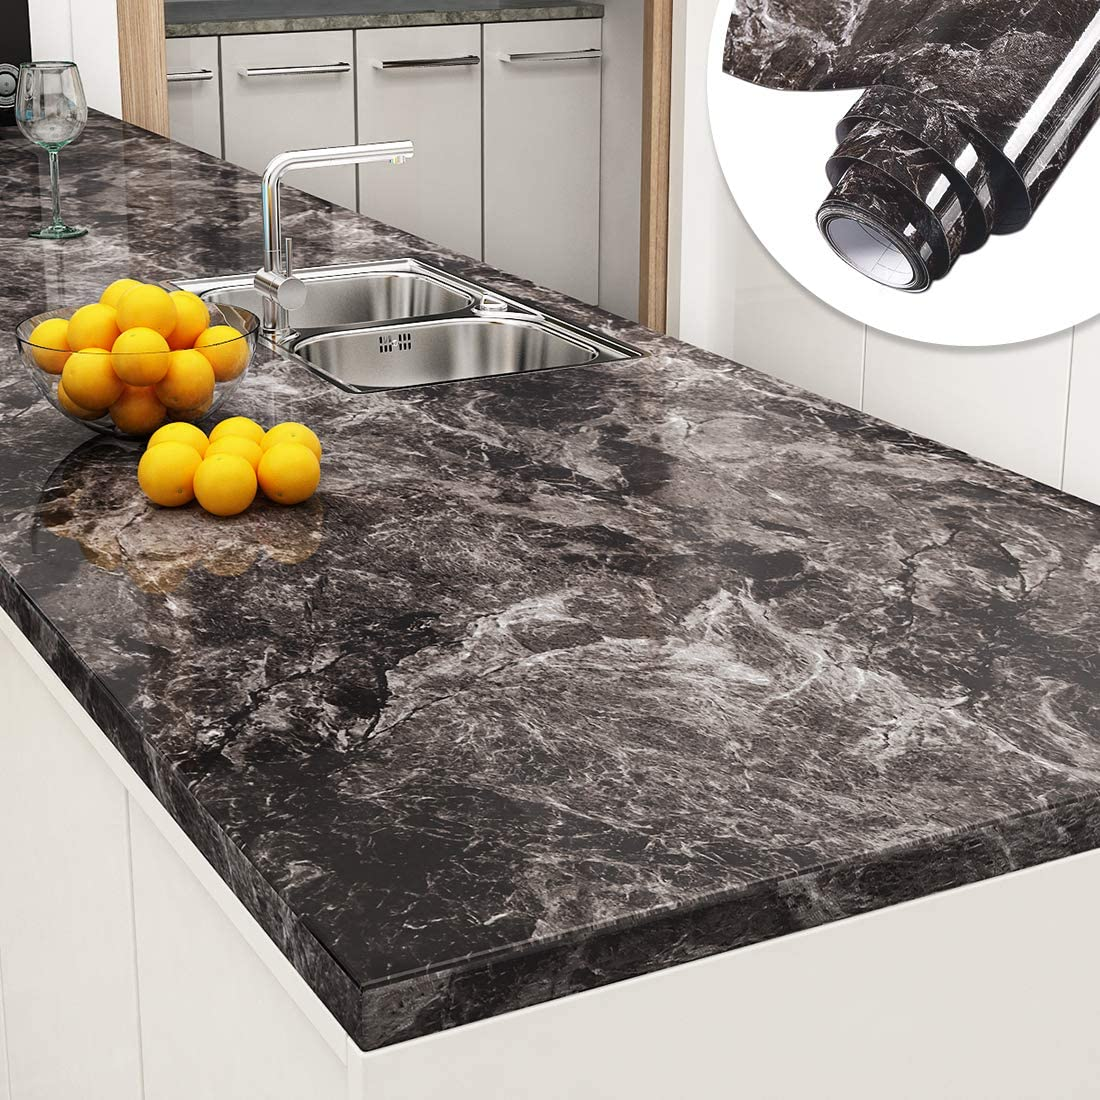 Granite Marble Removable Wallpaper Decorative Vinyl Film for Kitchen Countertops